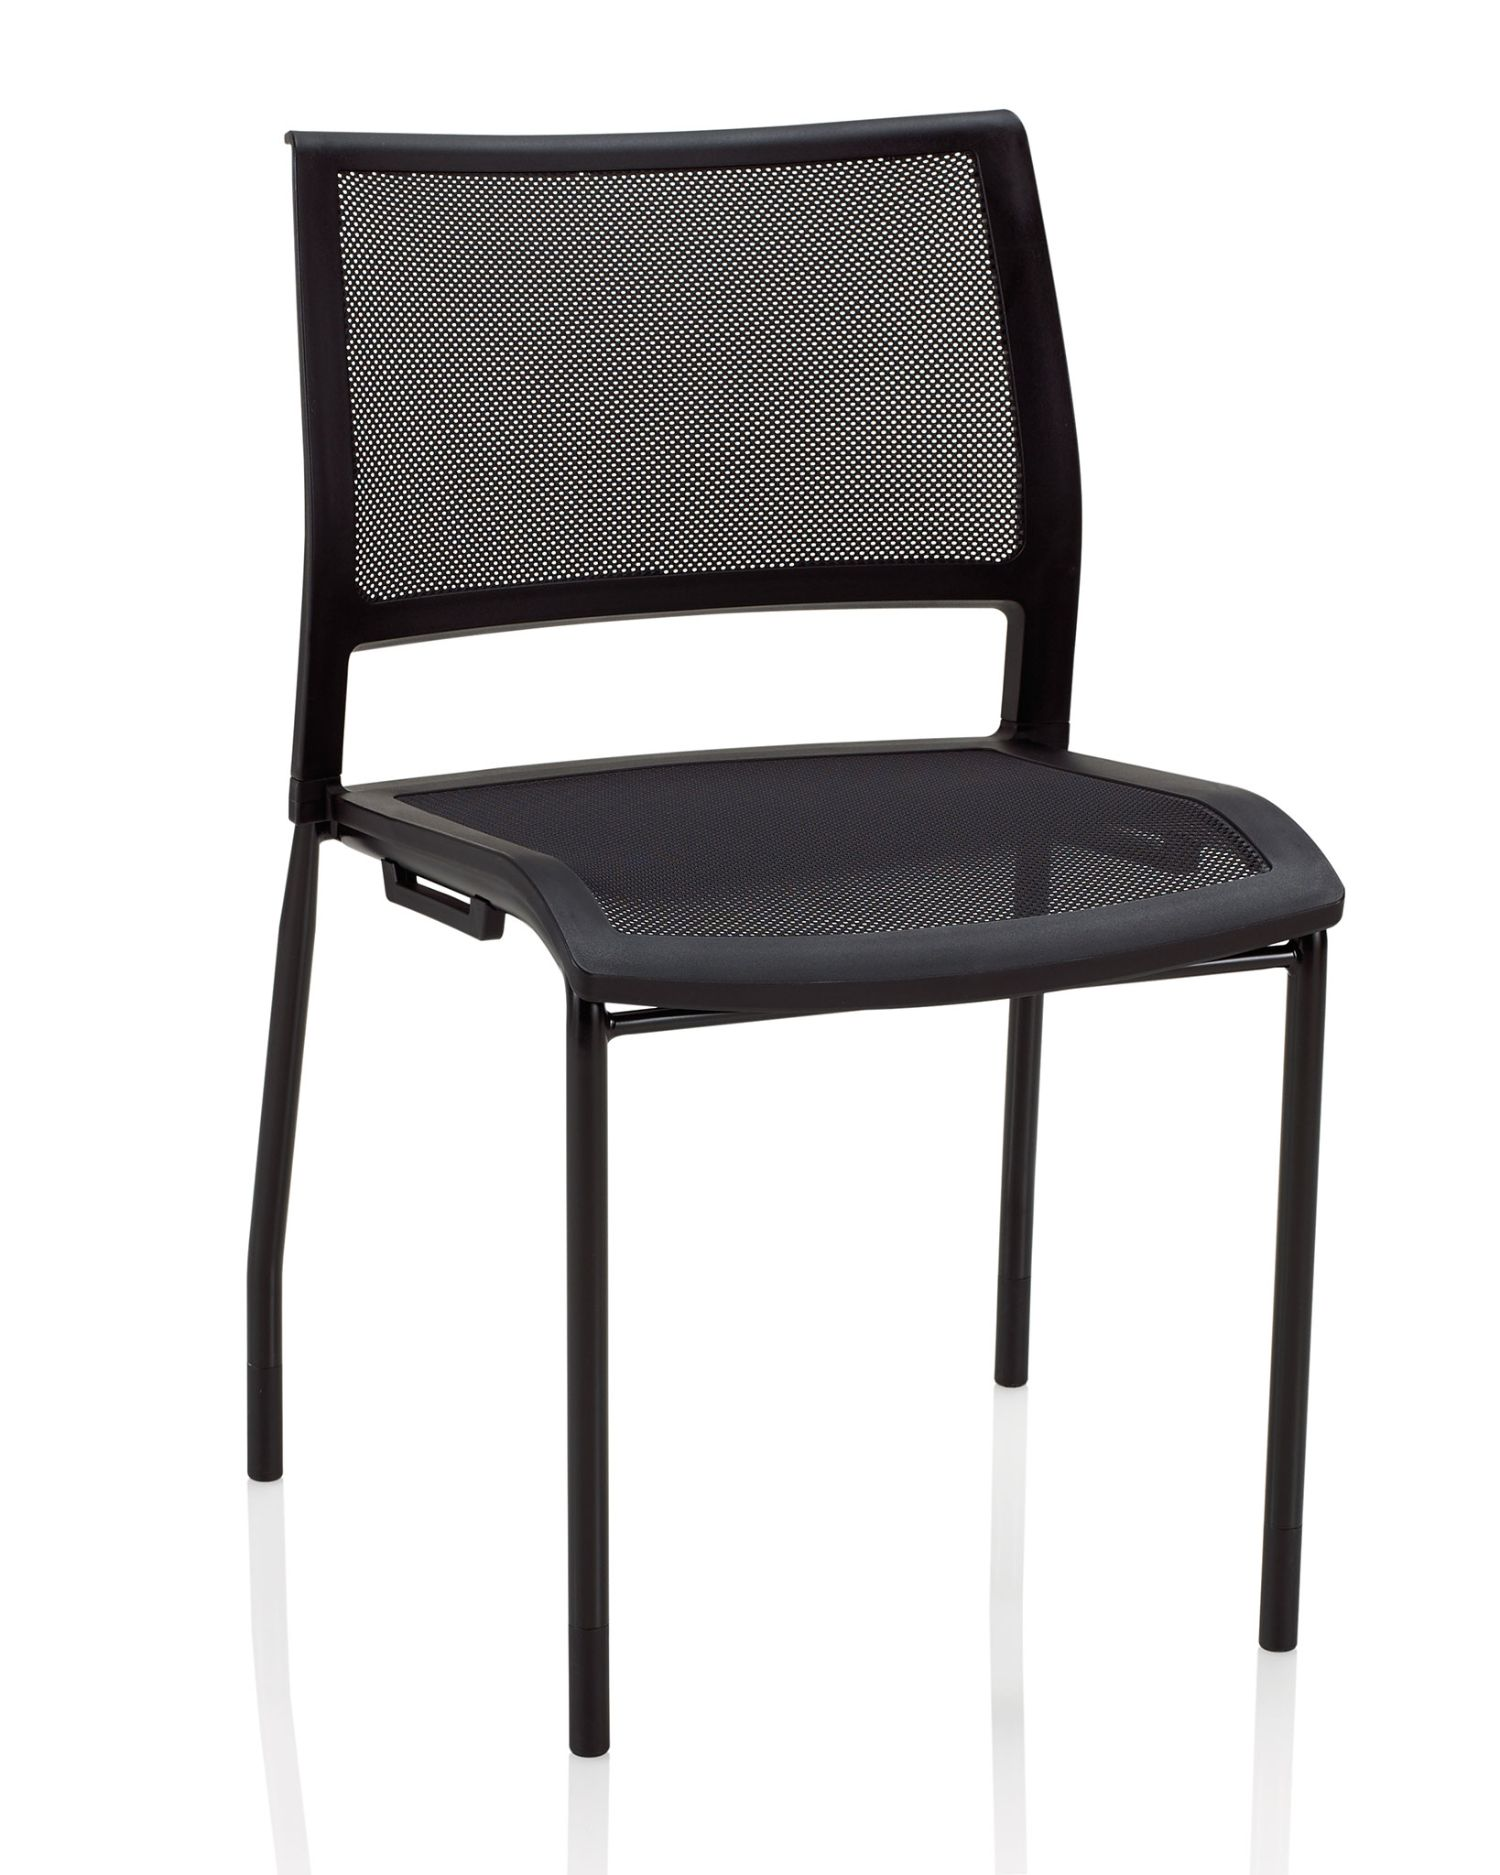 ki opt4 black stack chair with mesh seat and back